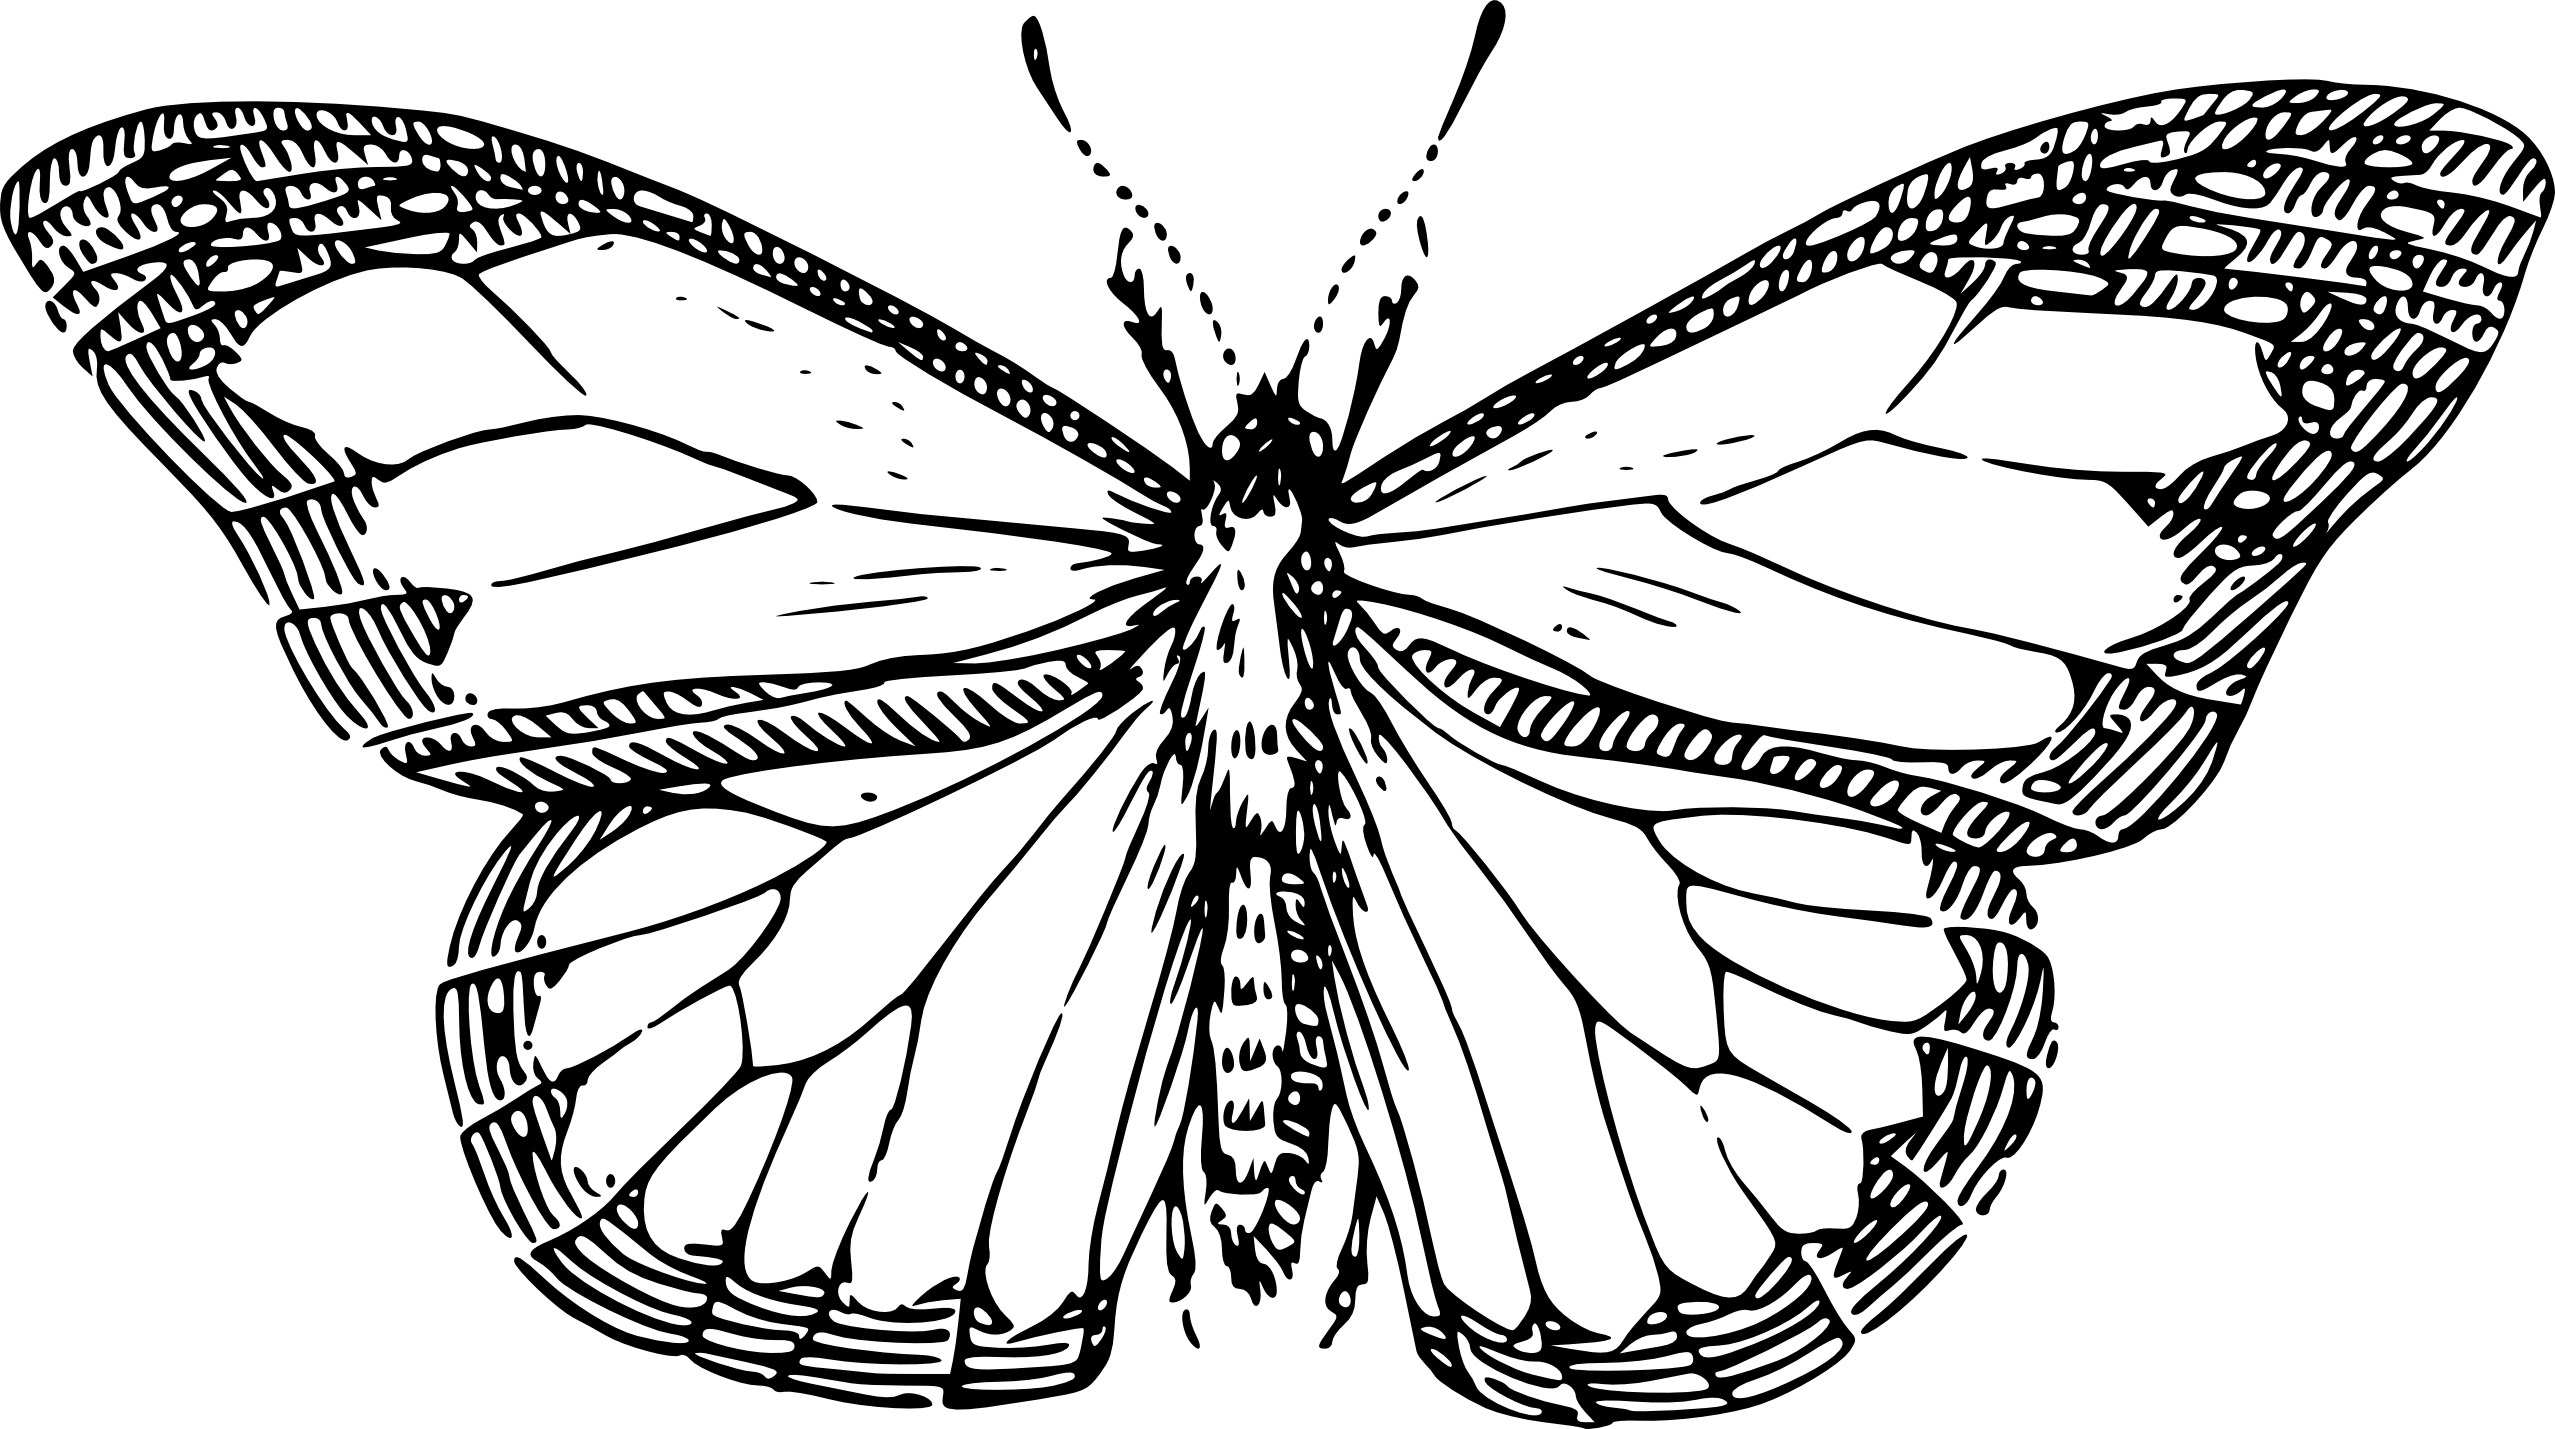 Drawing insects butterfly. Black and white cliparts